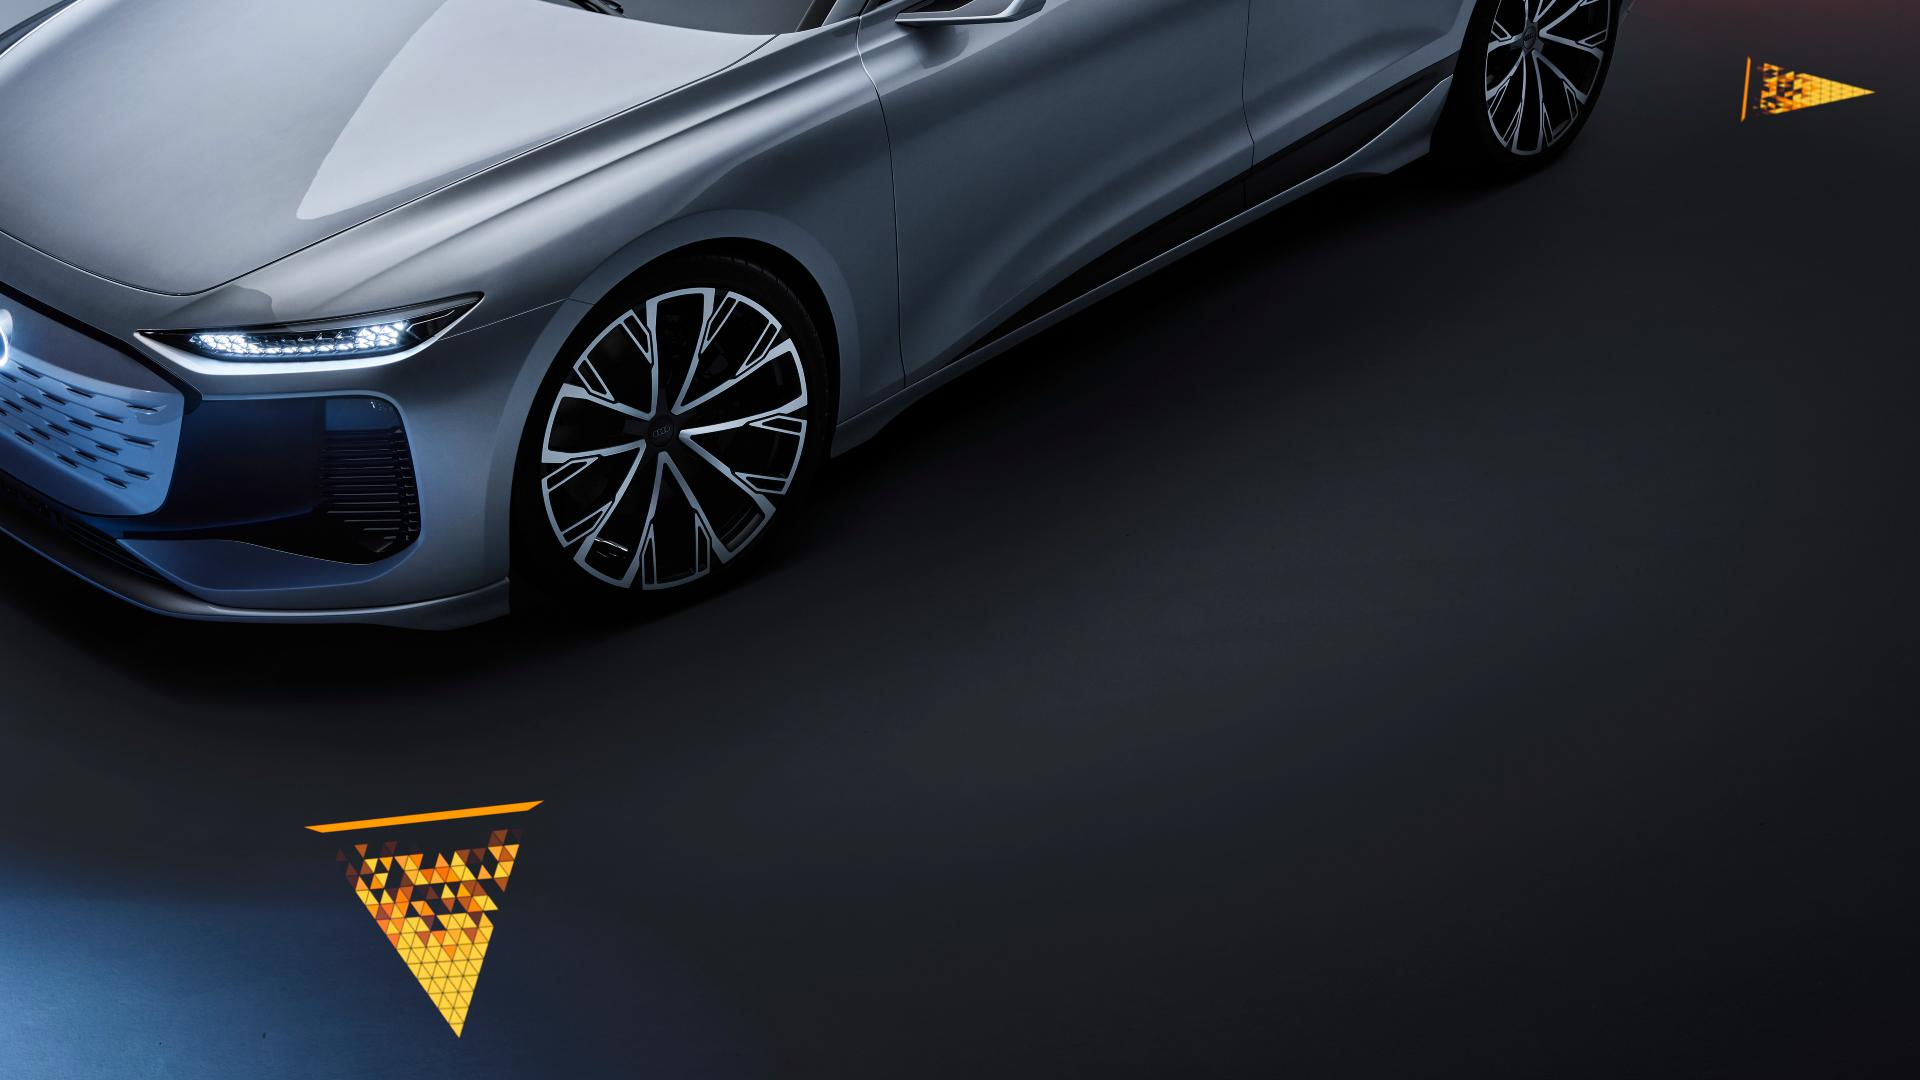 The Audi A6 e-tron concept's Matrix LED headlights can project vital signs onto the road surface. Image: Audi